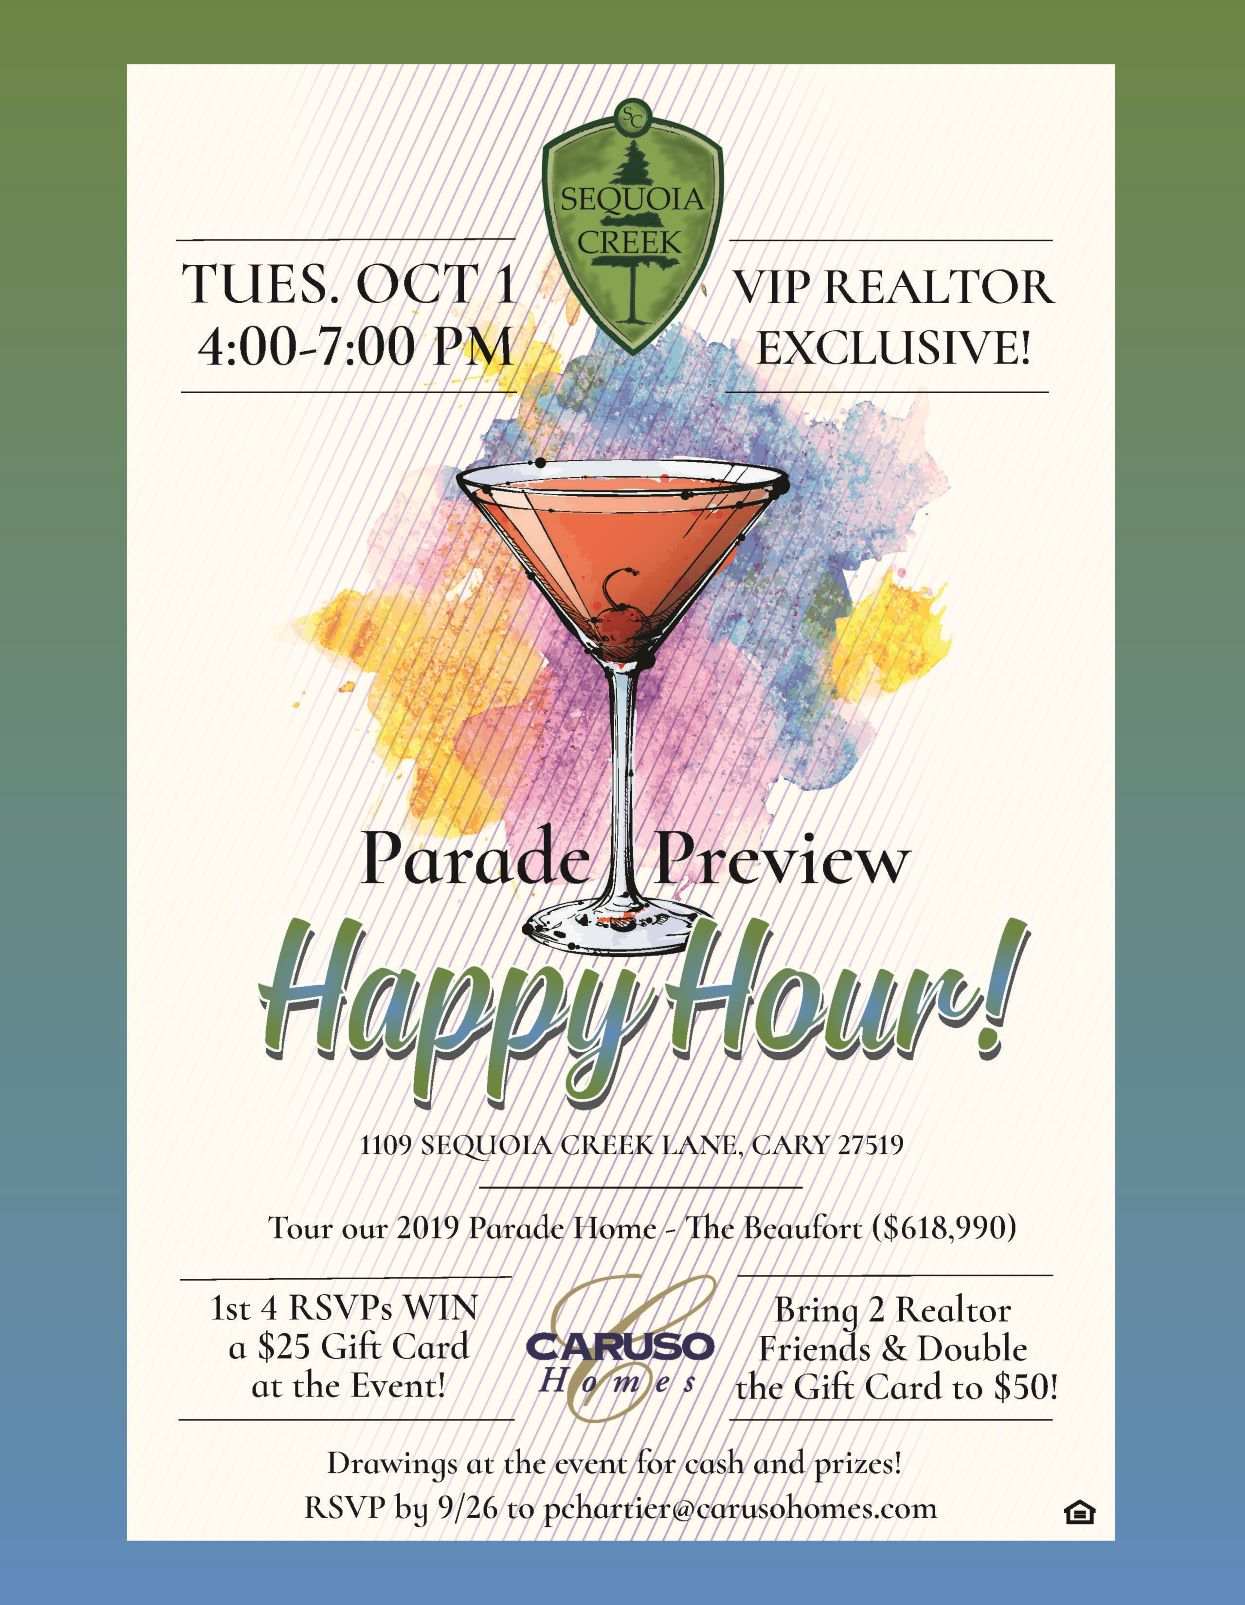 Parade Preview Happy Hour